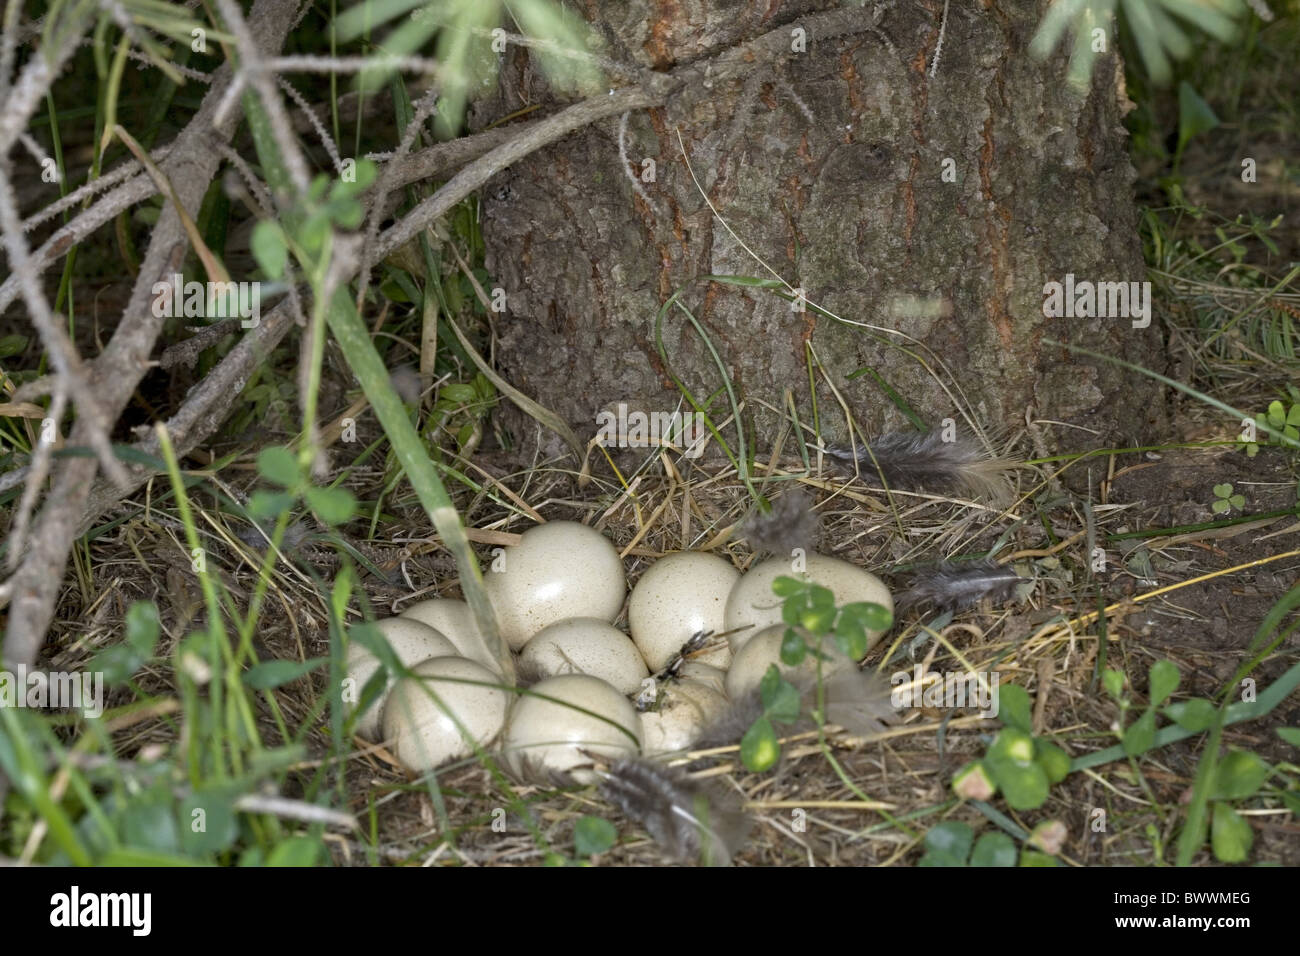 Chukar Partridge (Alectoris chukar) eggs in nest, under evergreen in